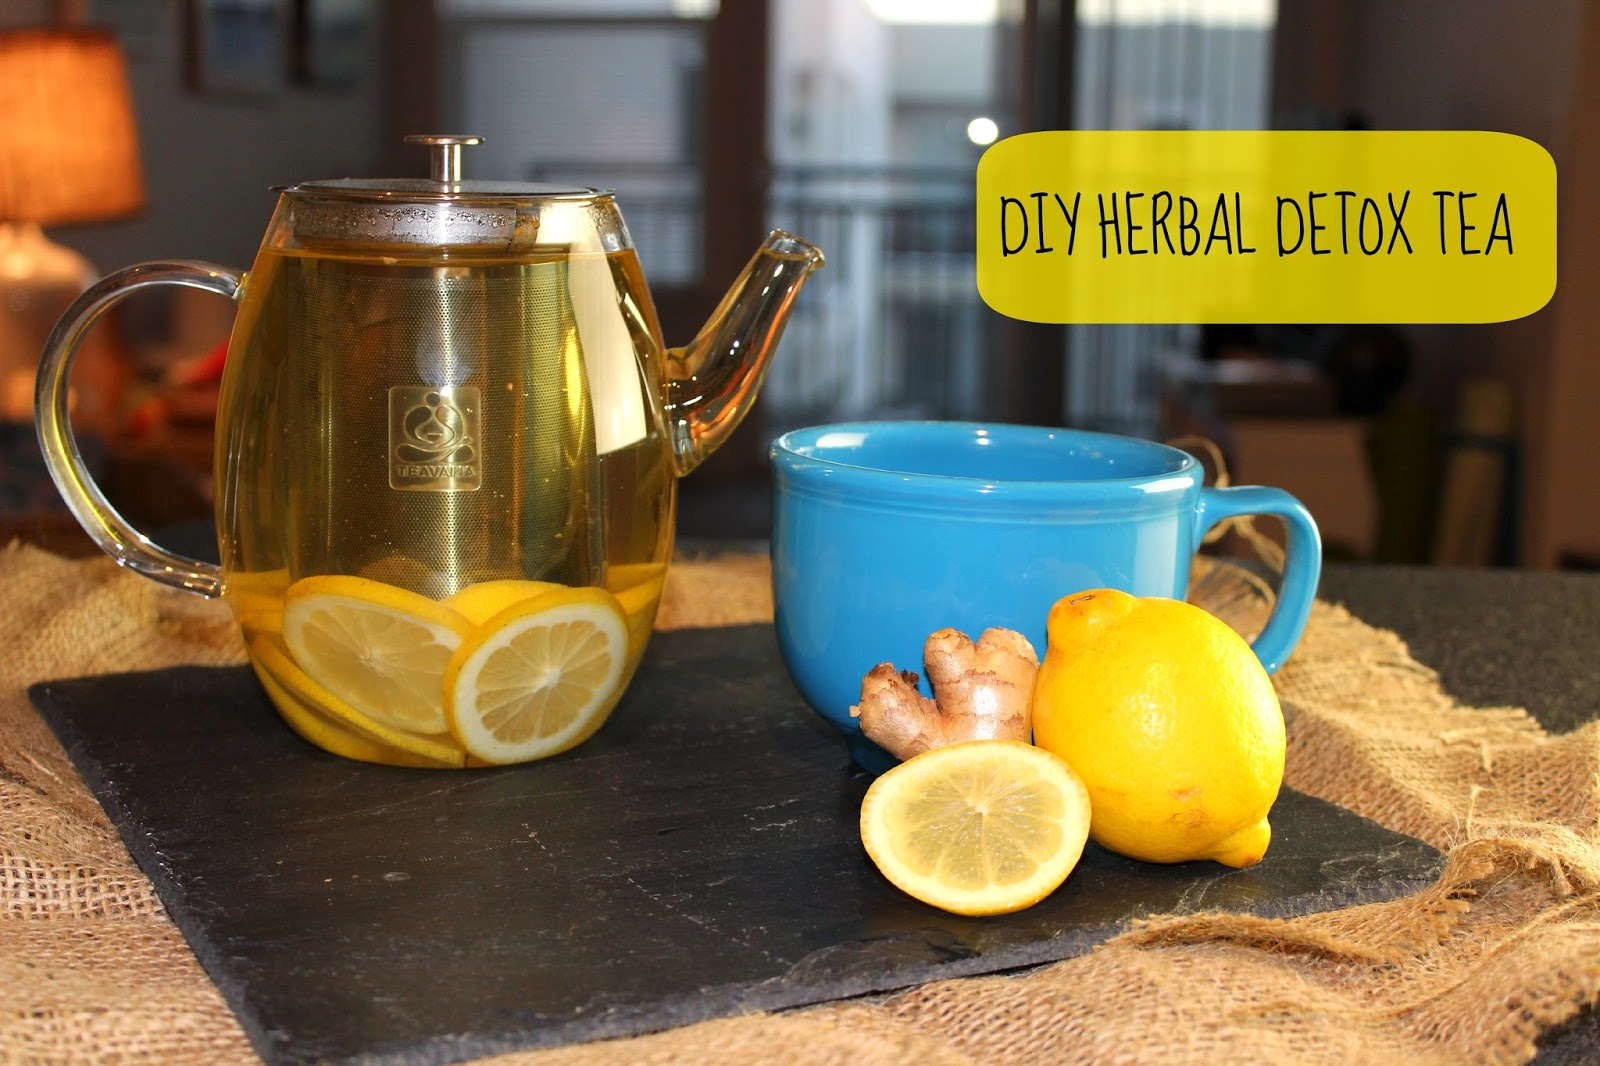 ... quite frankly many of the store bought detox teas I've tried tasted like weeds- which, yes, many of them are, but they don't have to taste like them!